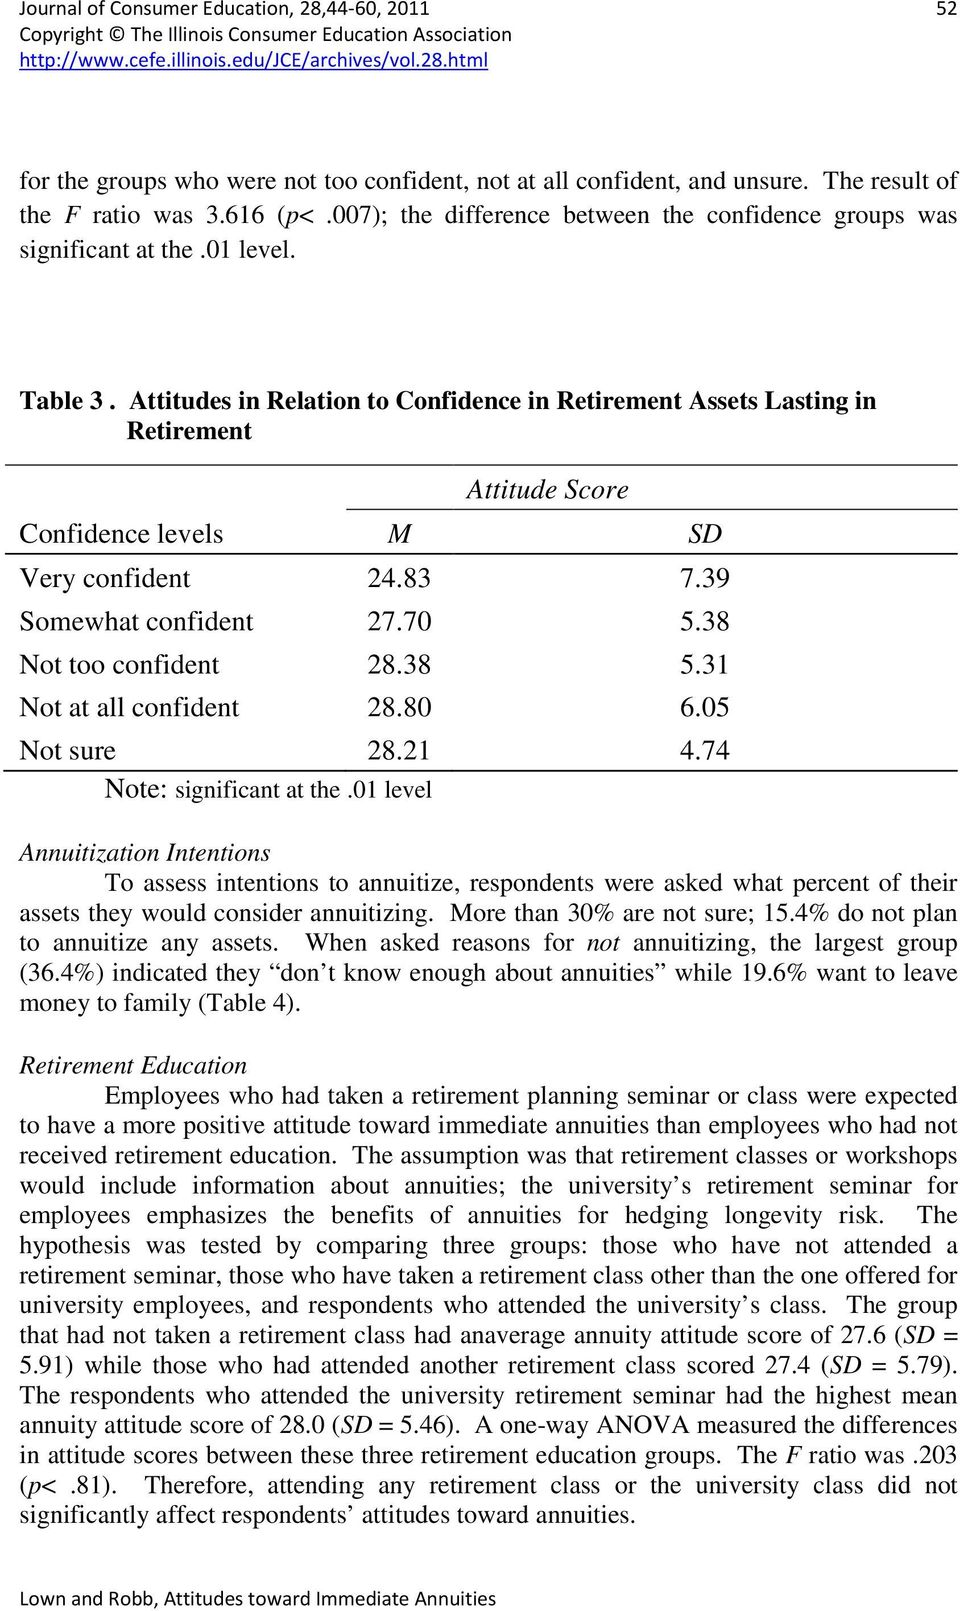 Attitudes in Relation to Confidence in Retirement Assets Lasting in Retirement Attitude Score Confidence levels M SD Very confident 24.83 7.39 Somewhat confident 27.70 5.38 Not too confident 28.38 5.